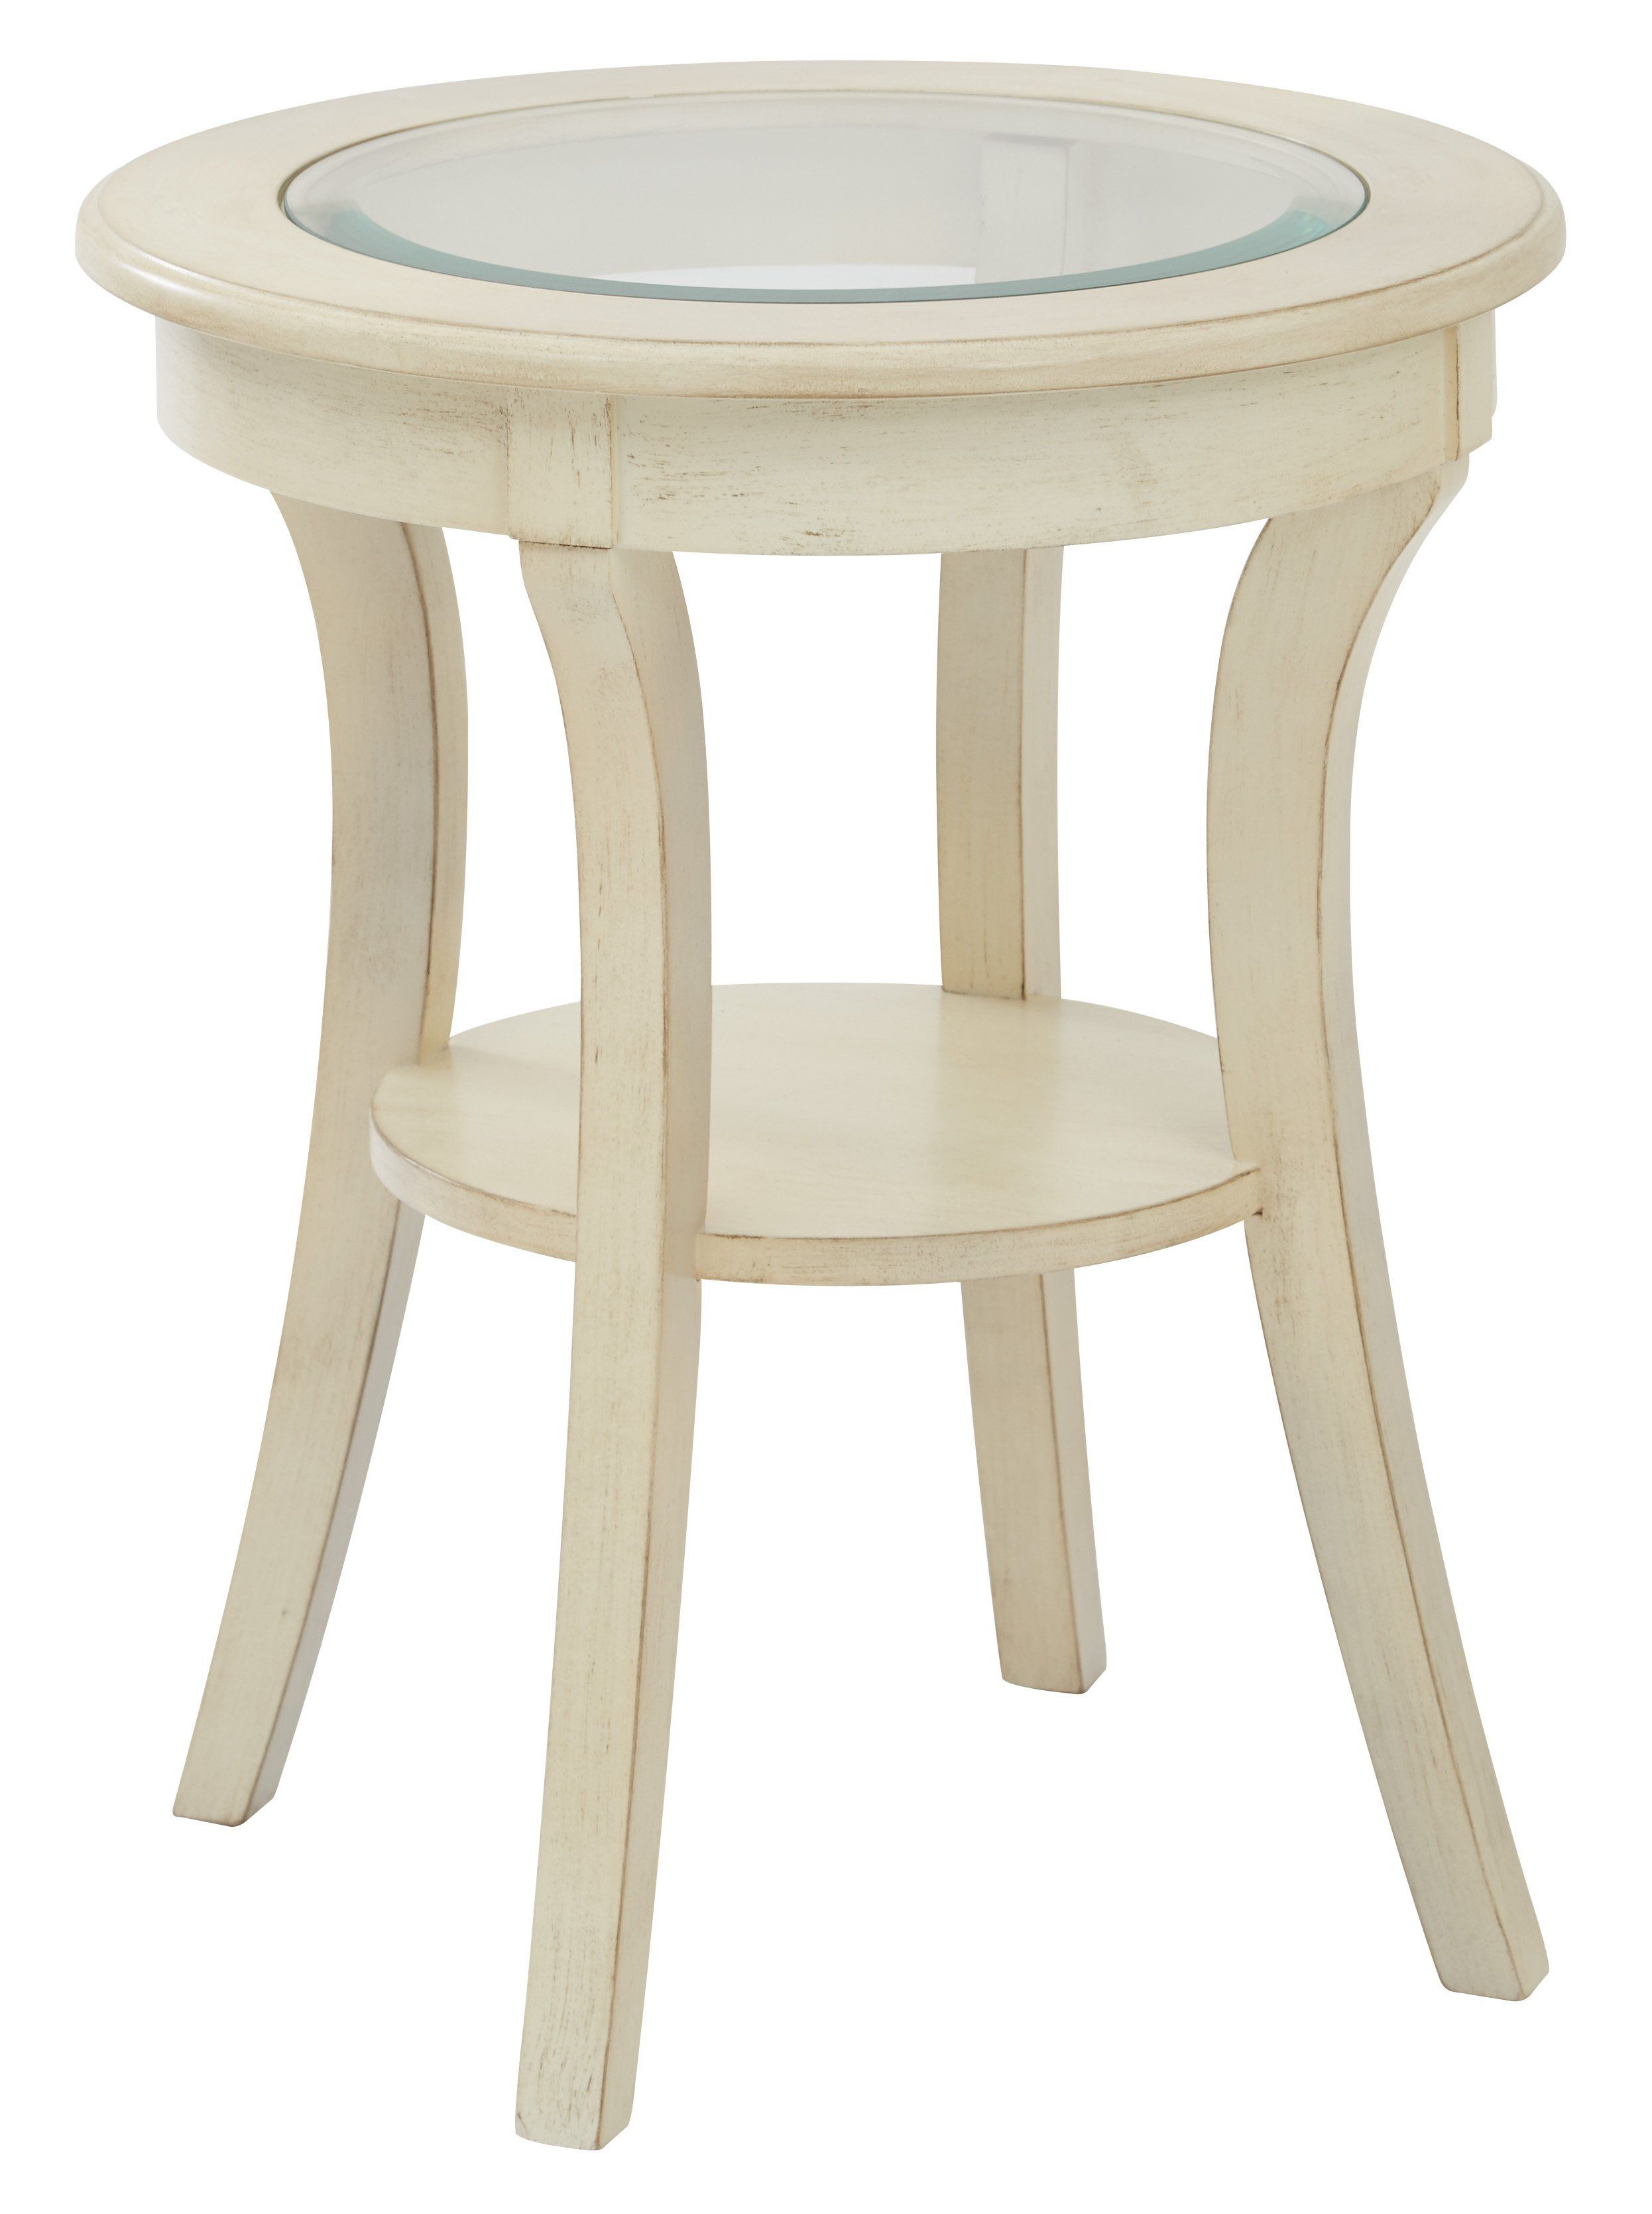 office star antique white harper round accent table products small tables metal end console ikea storage shelf unit red lamp corner cabinet inch hairpin legs tall oak side